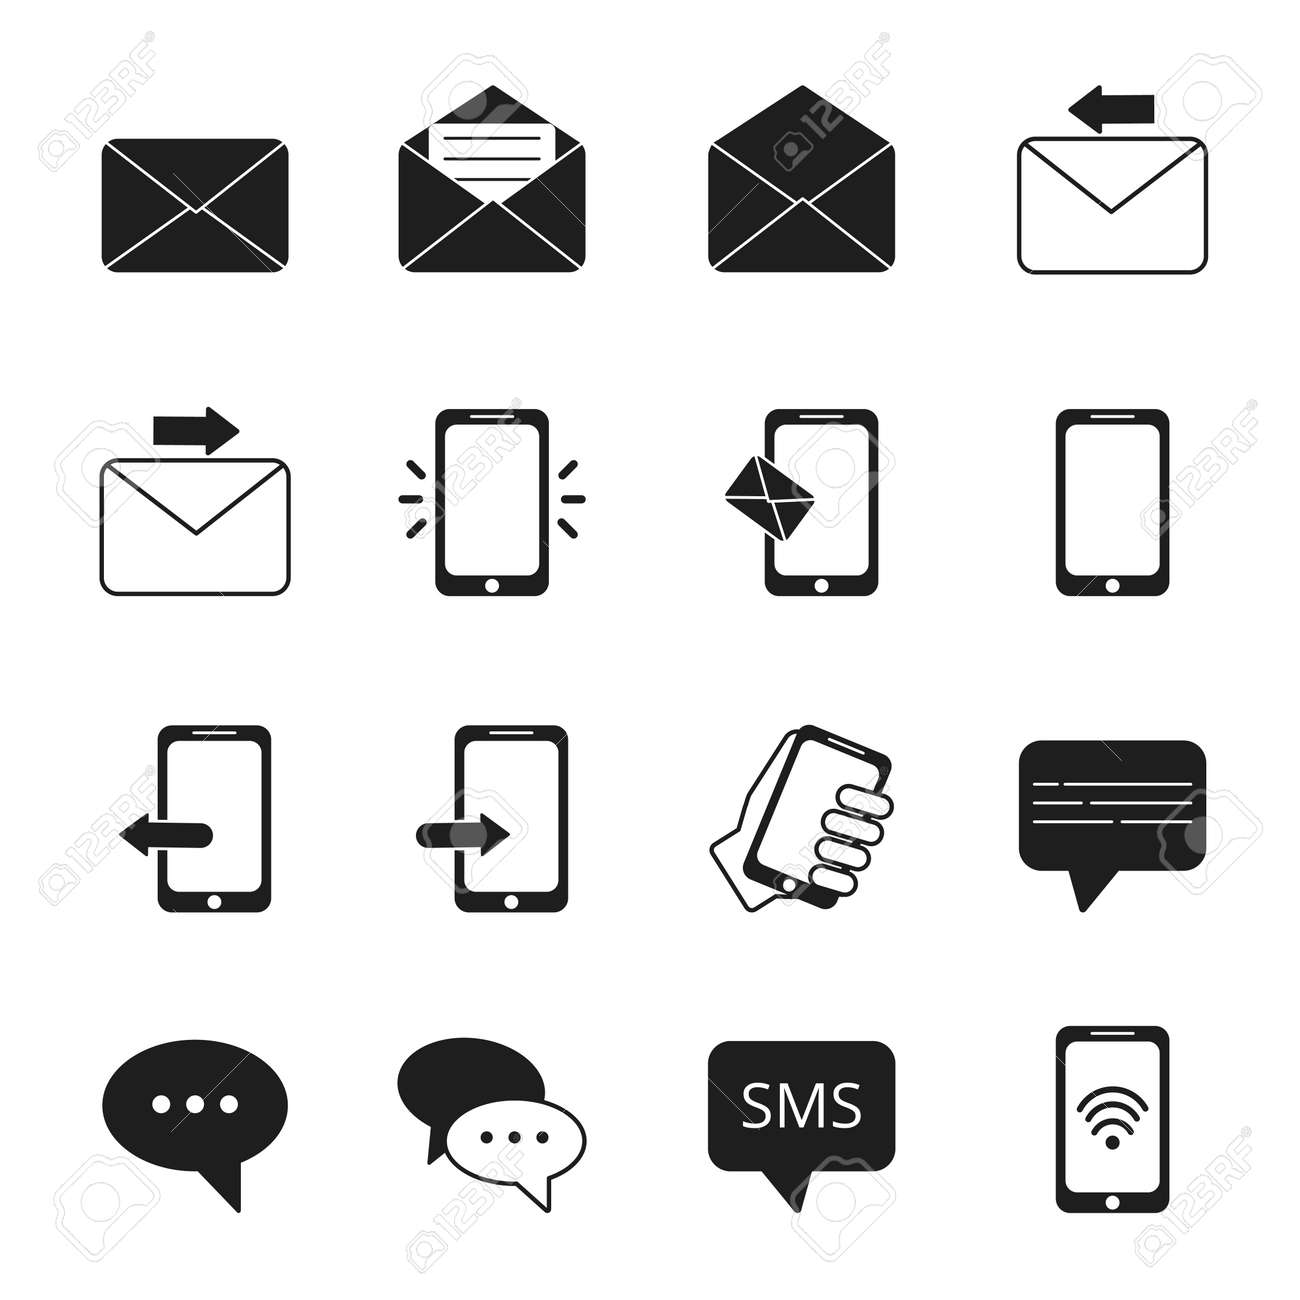 Business icon set of communication symbols. Phone, message bubbles, email signs. Message email and phone, telephone contact, speech bubble. Vector illustration - 166849470